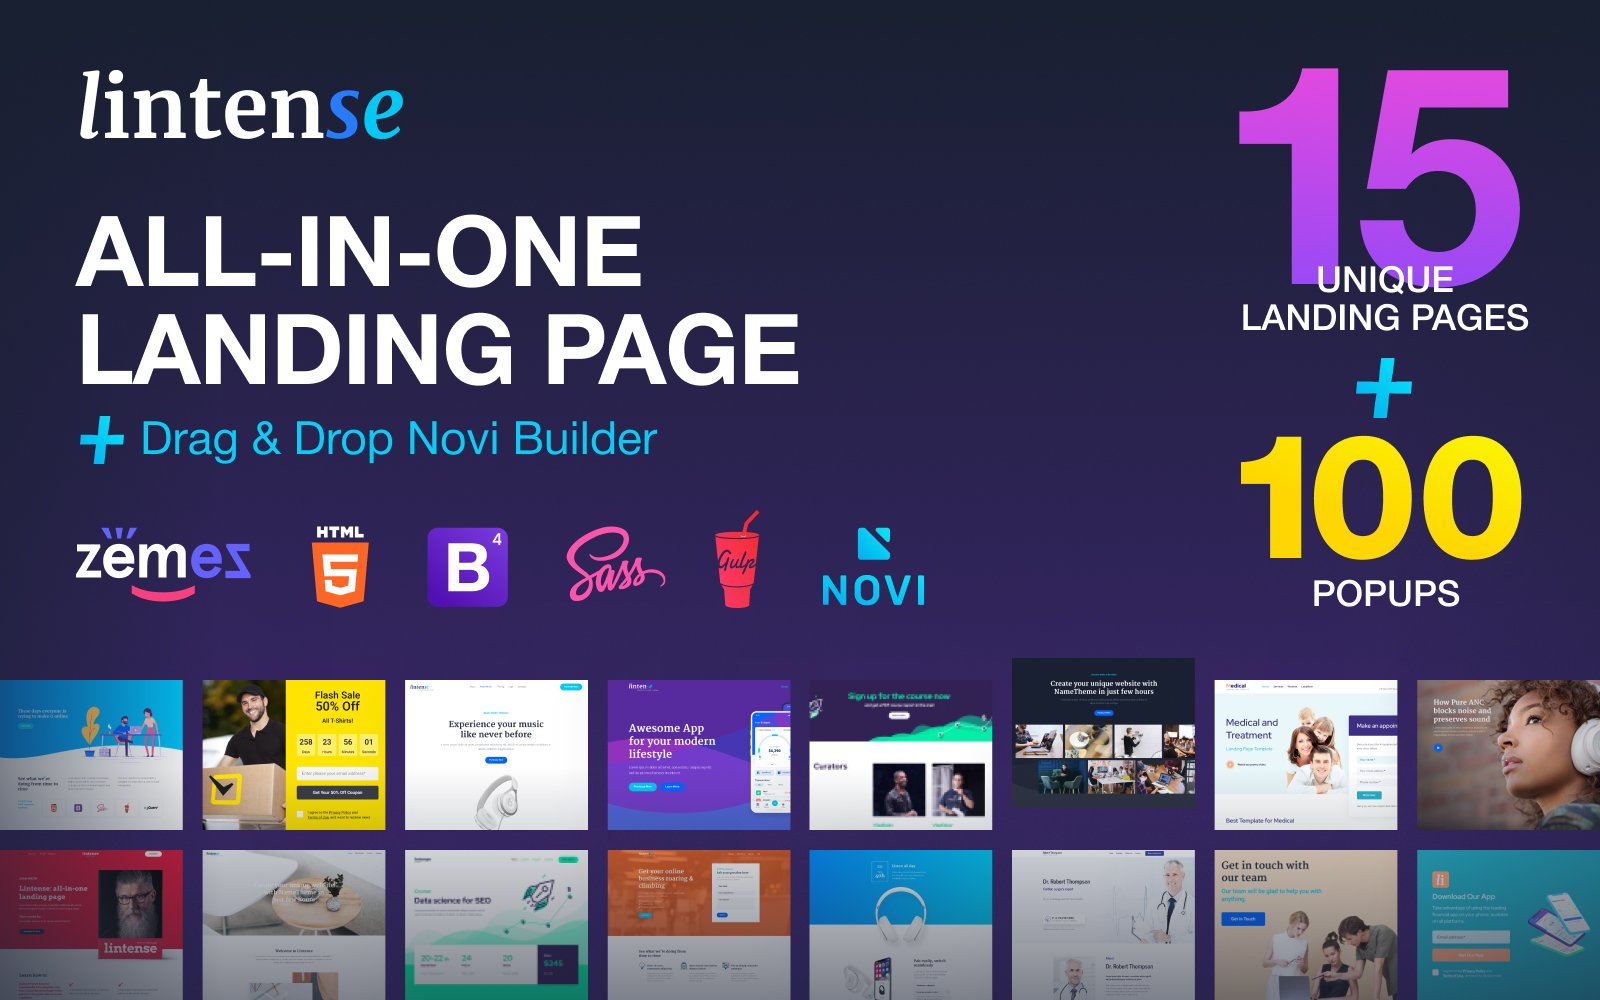 Lintense - All-in-one Landing Page Template - screenshot